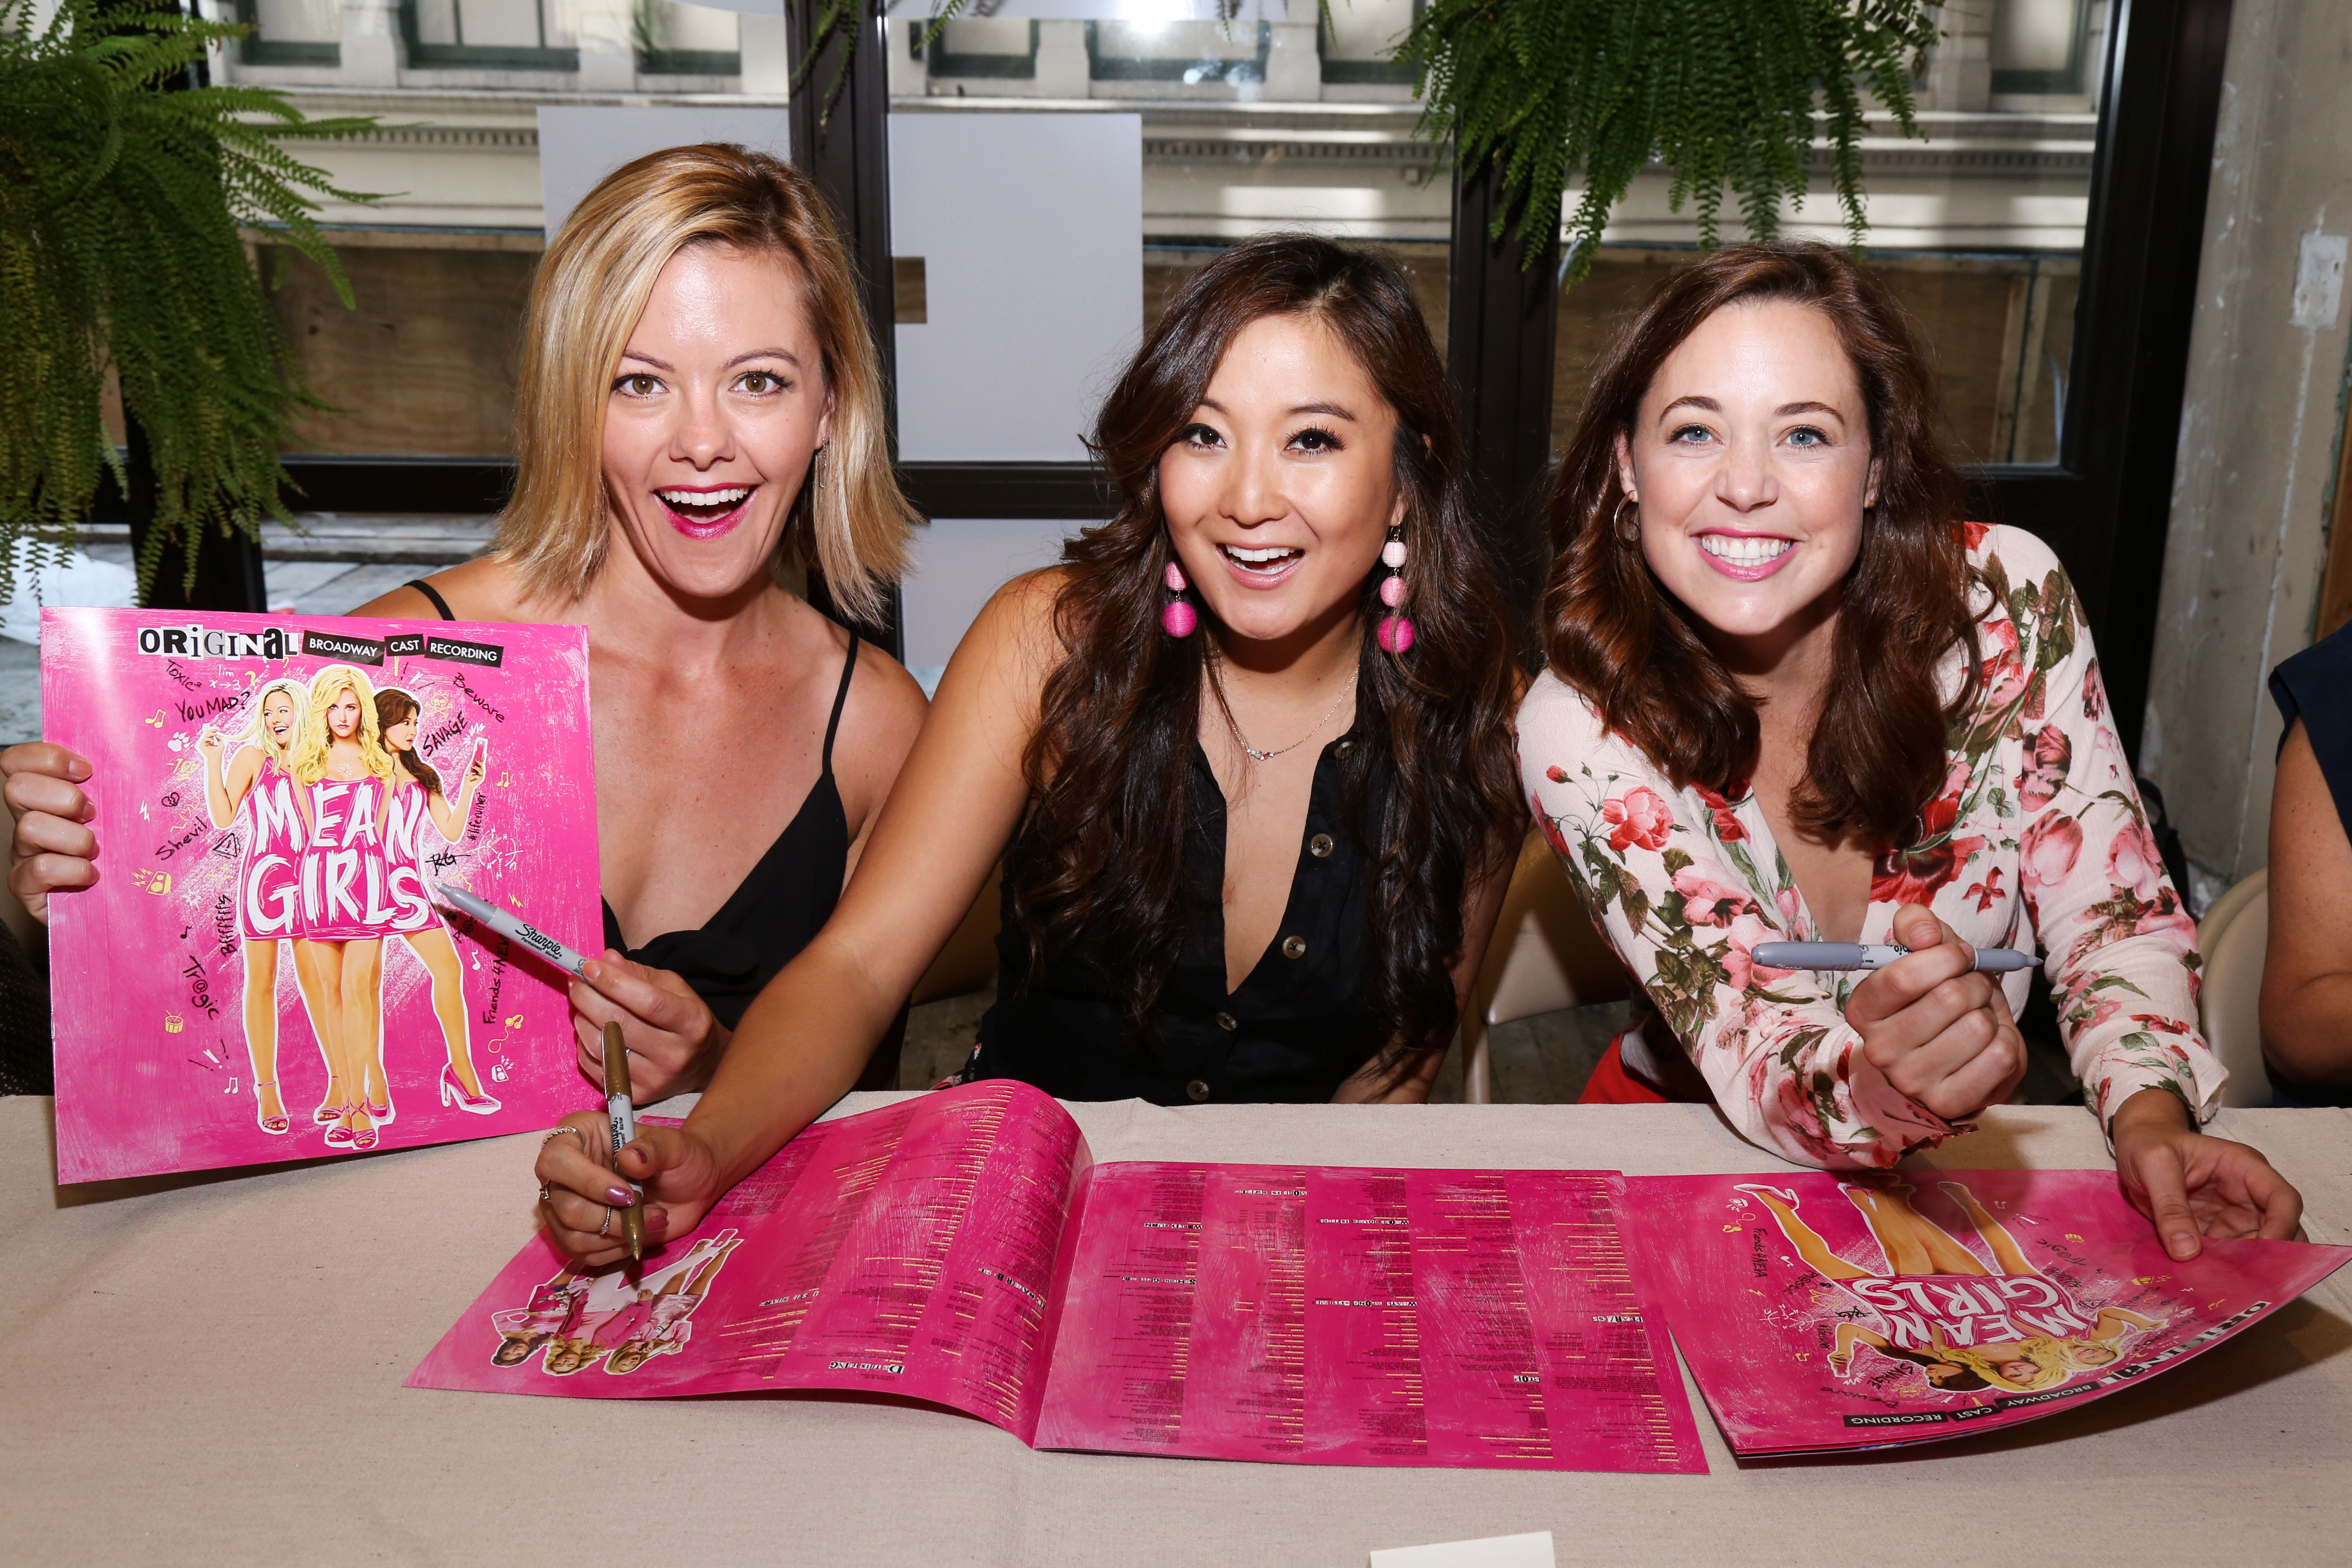 See the Company of Mean Girls Celebrate Their Pink Vinyl Cast Album